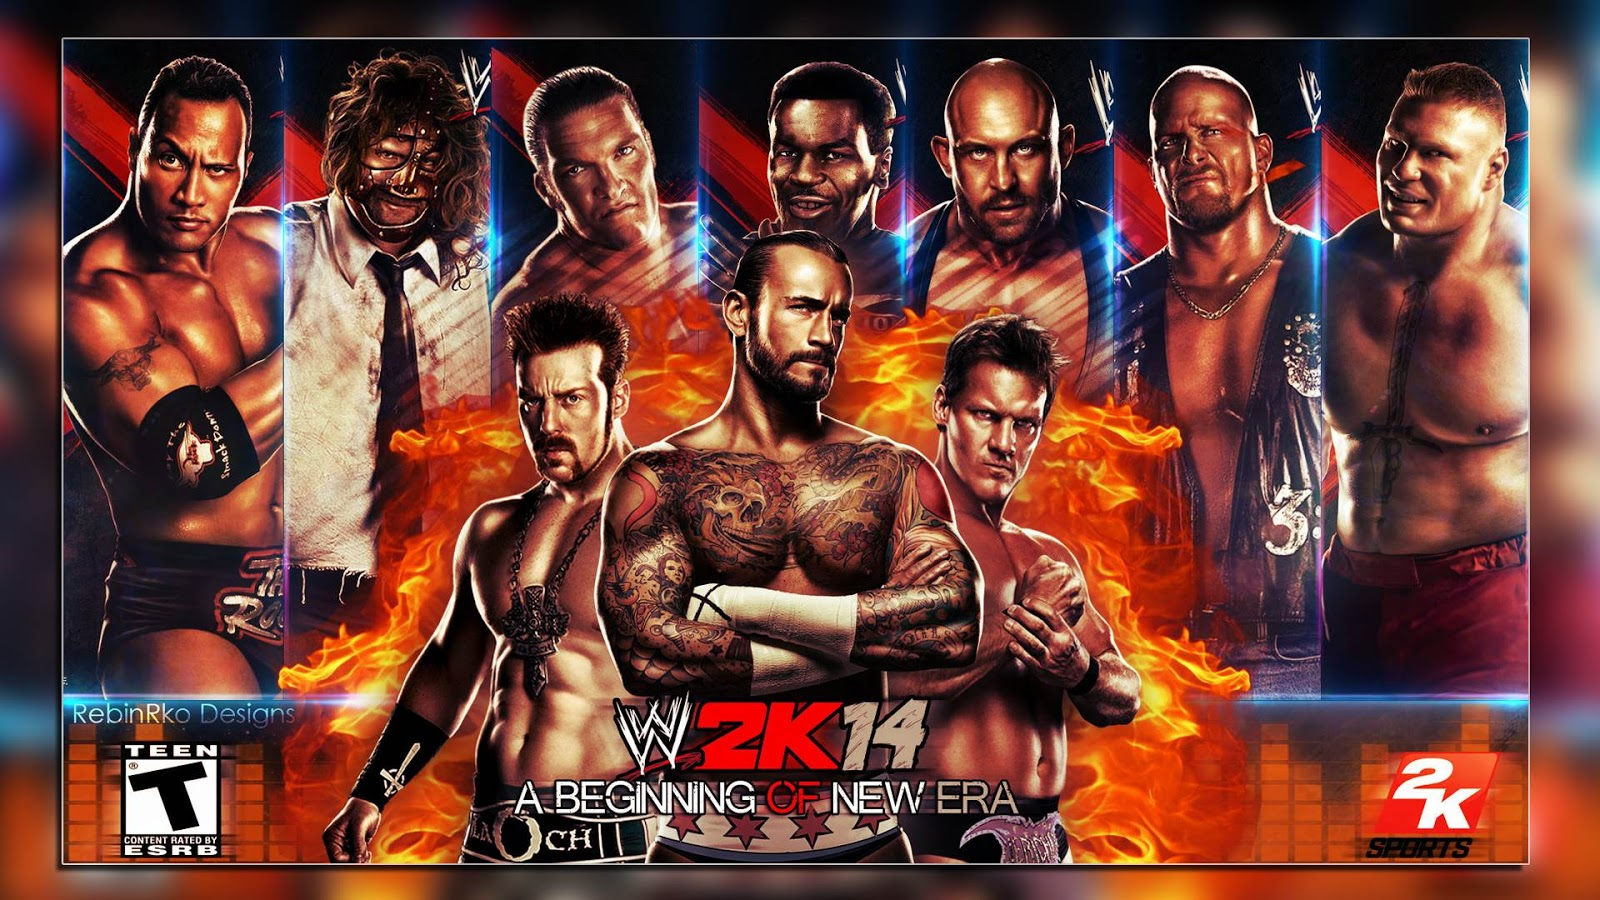 Wwe 2k14 Cover Gameplay Trailers And Roster Information